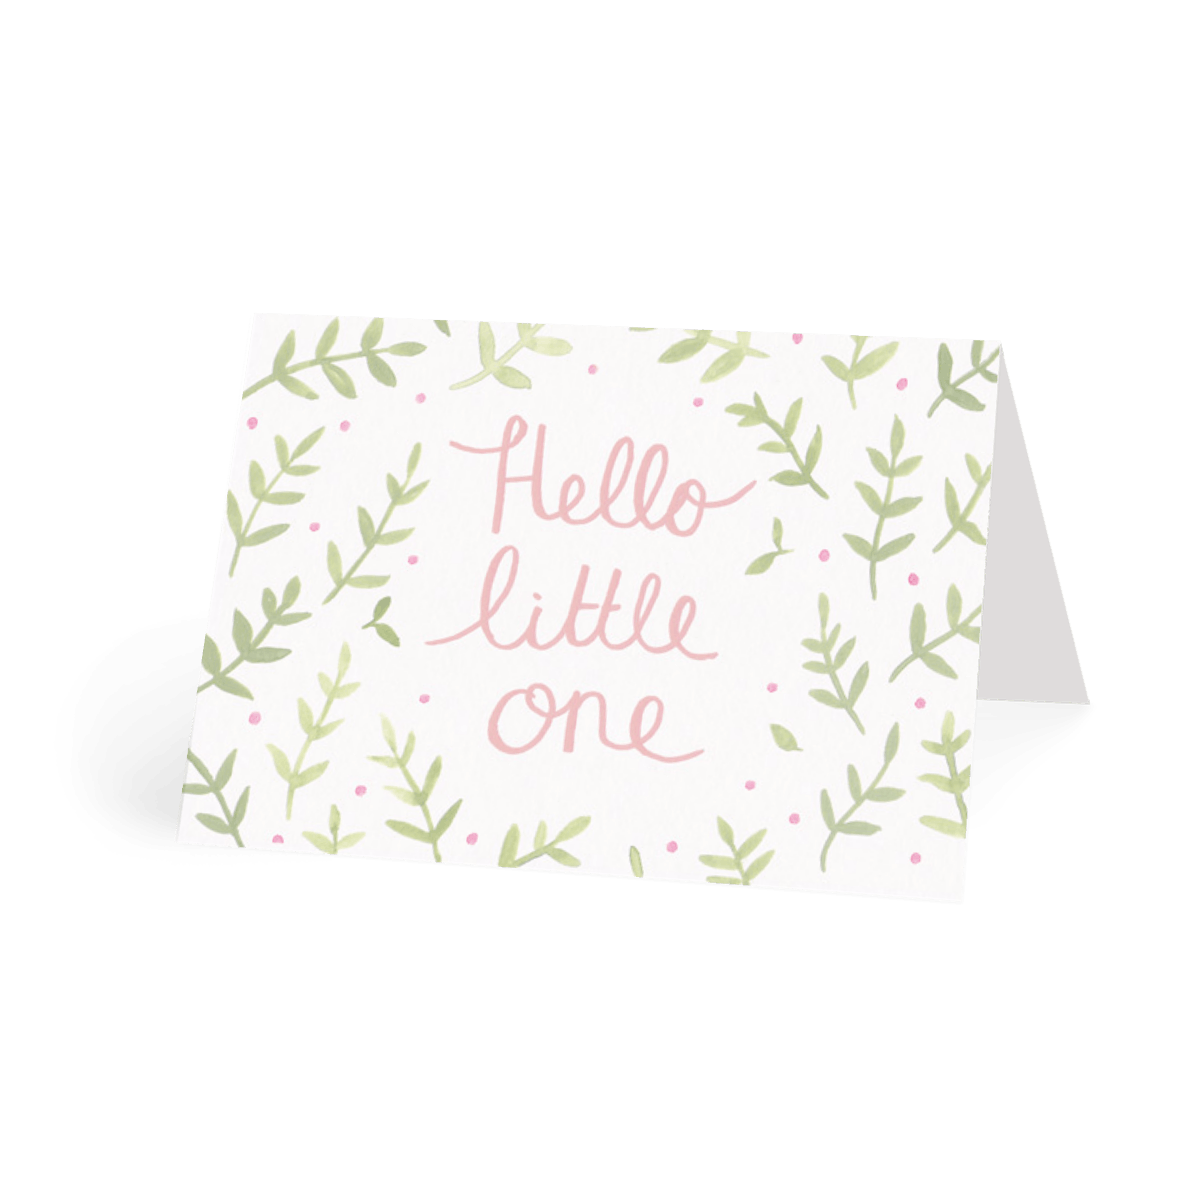 Https%3a%2f%2fwww.papier.com%2fproduct image%2f7910%2f14%2fhello little one pink 1953 front 1464948322.png?ixlib=rb 1.1